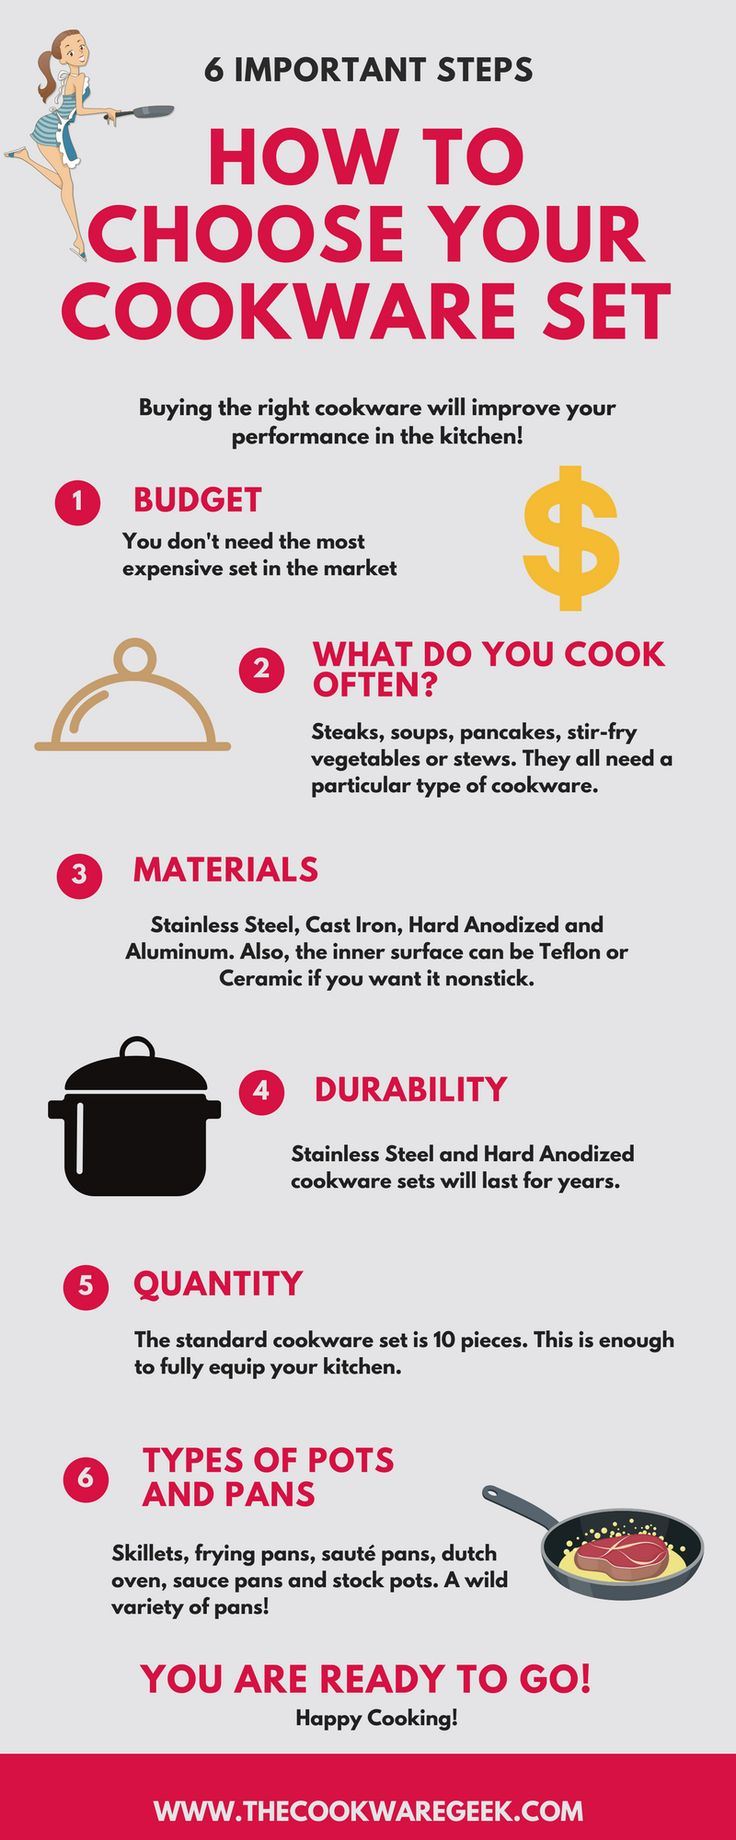 If you don't know how to choose your cookware set, this is the right article for you. Find the best cookware sets out there.